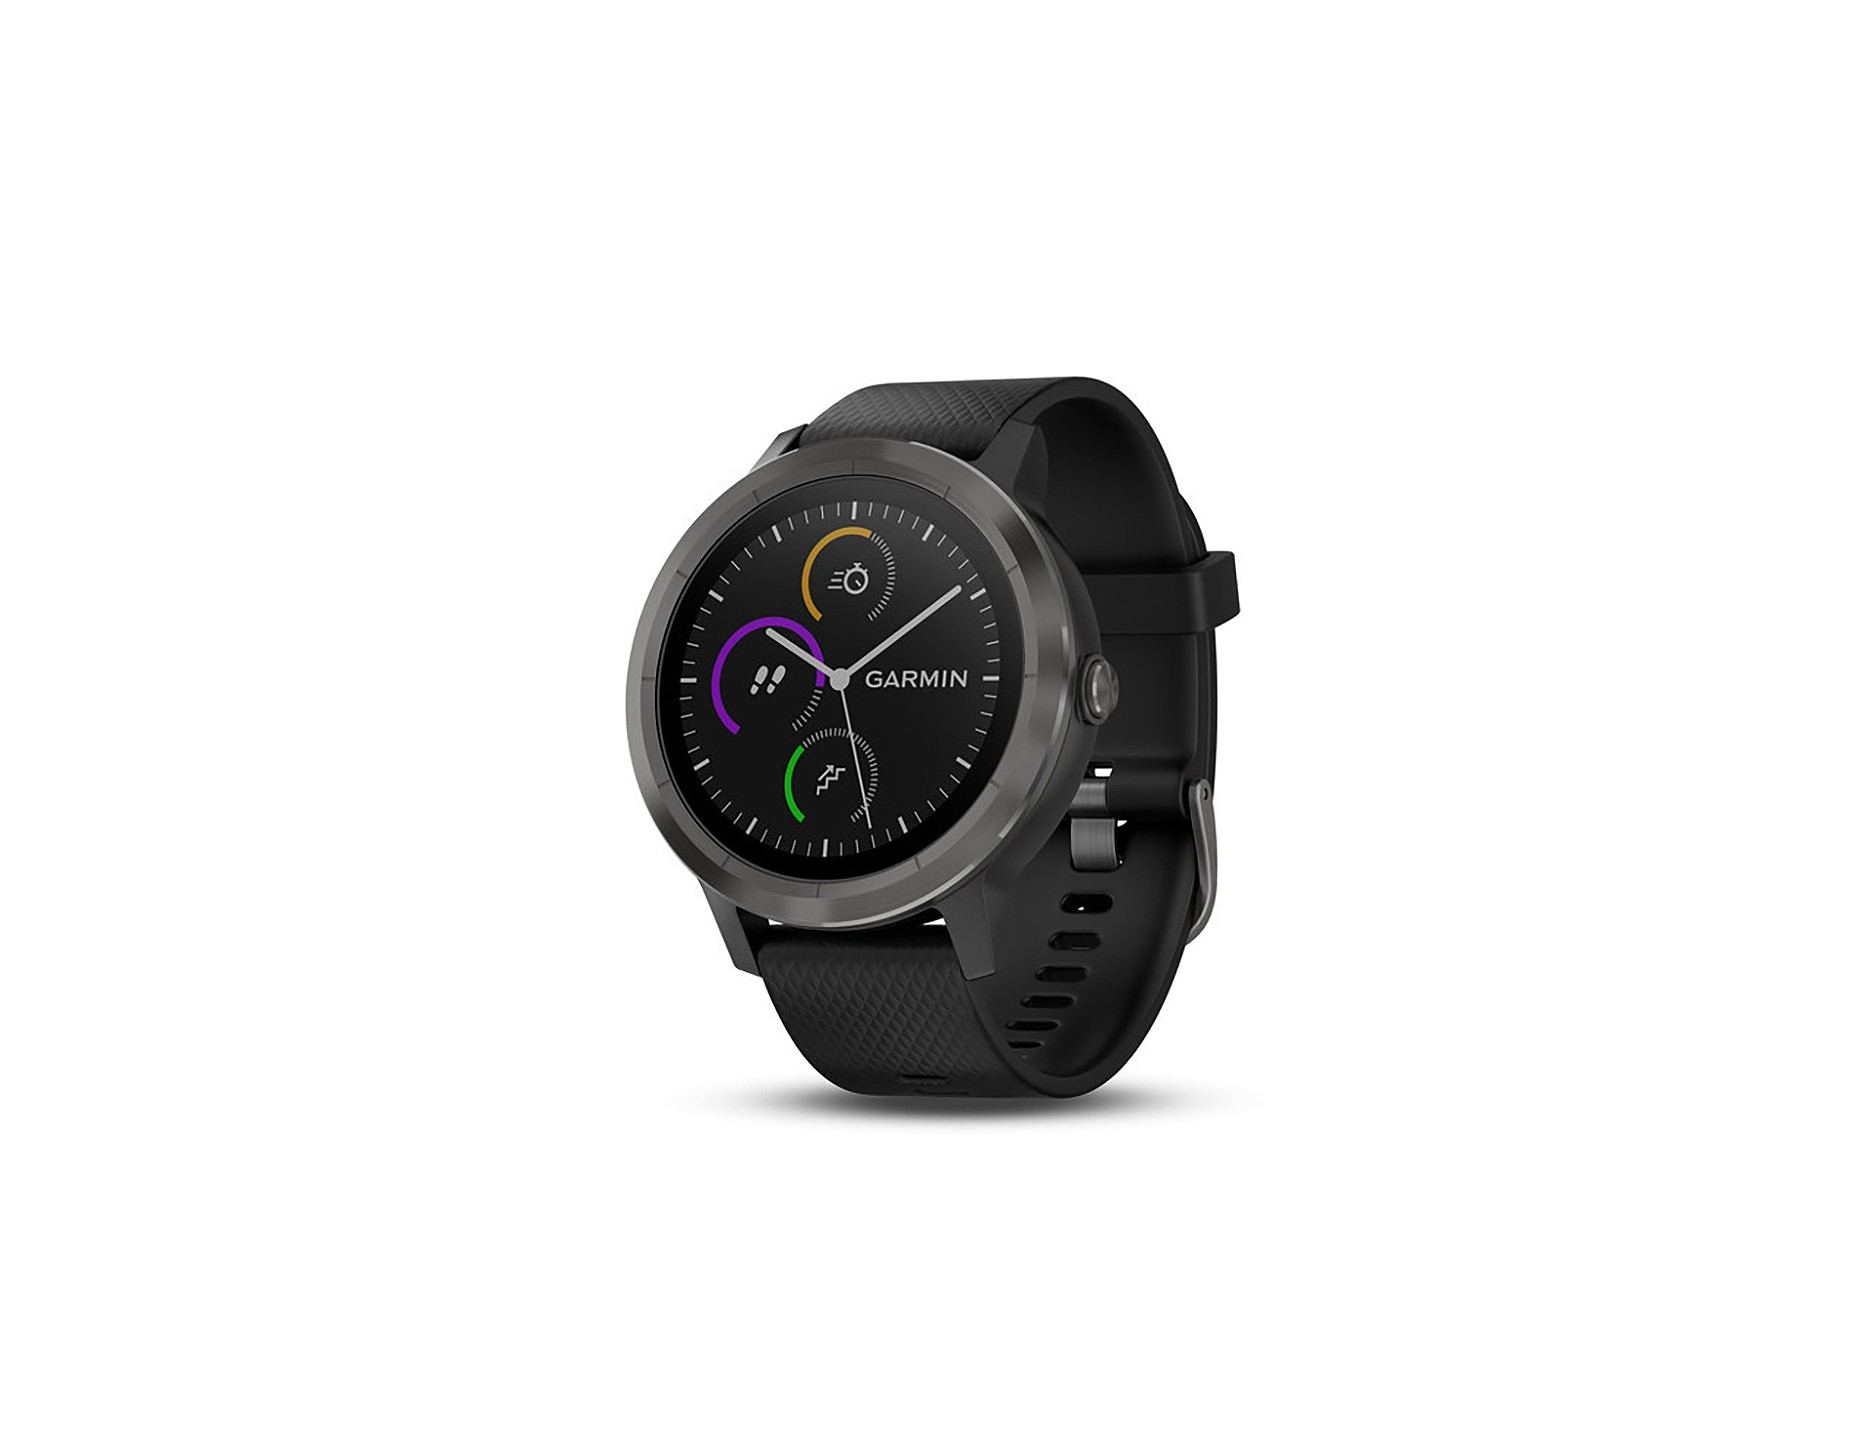 garmin vivoactive 3 montre gps de premier choix rose bikes. Black Bedroom Furniture Sets. Home Design Ideas